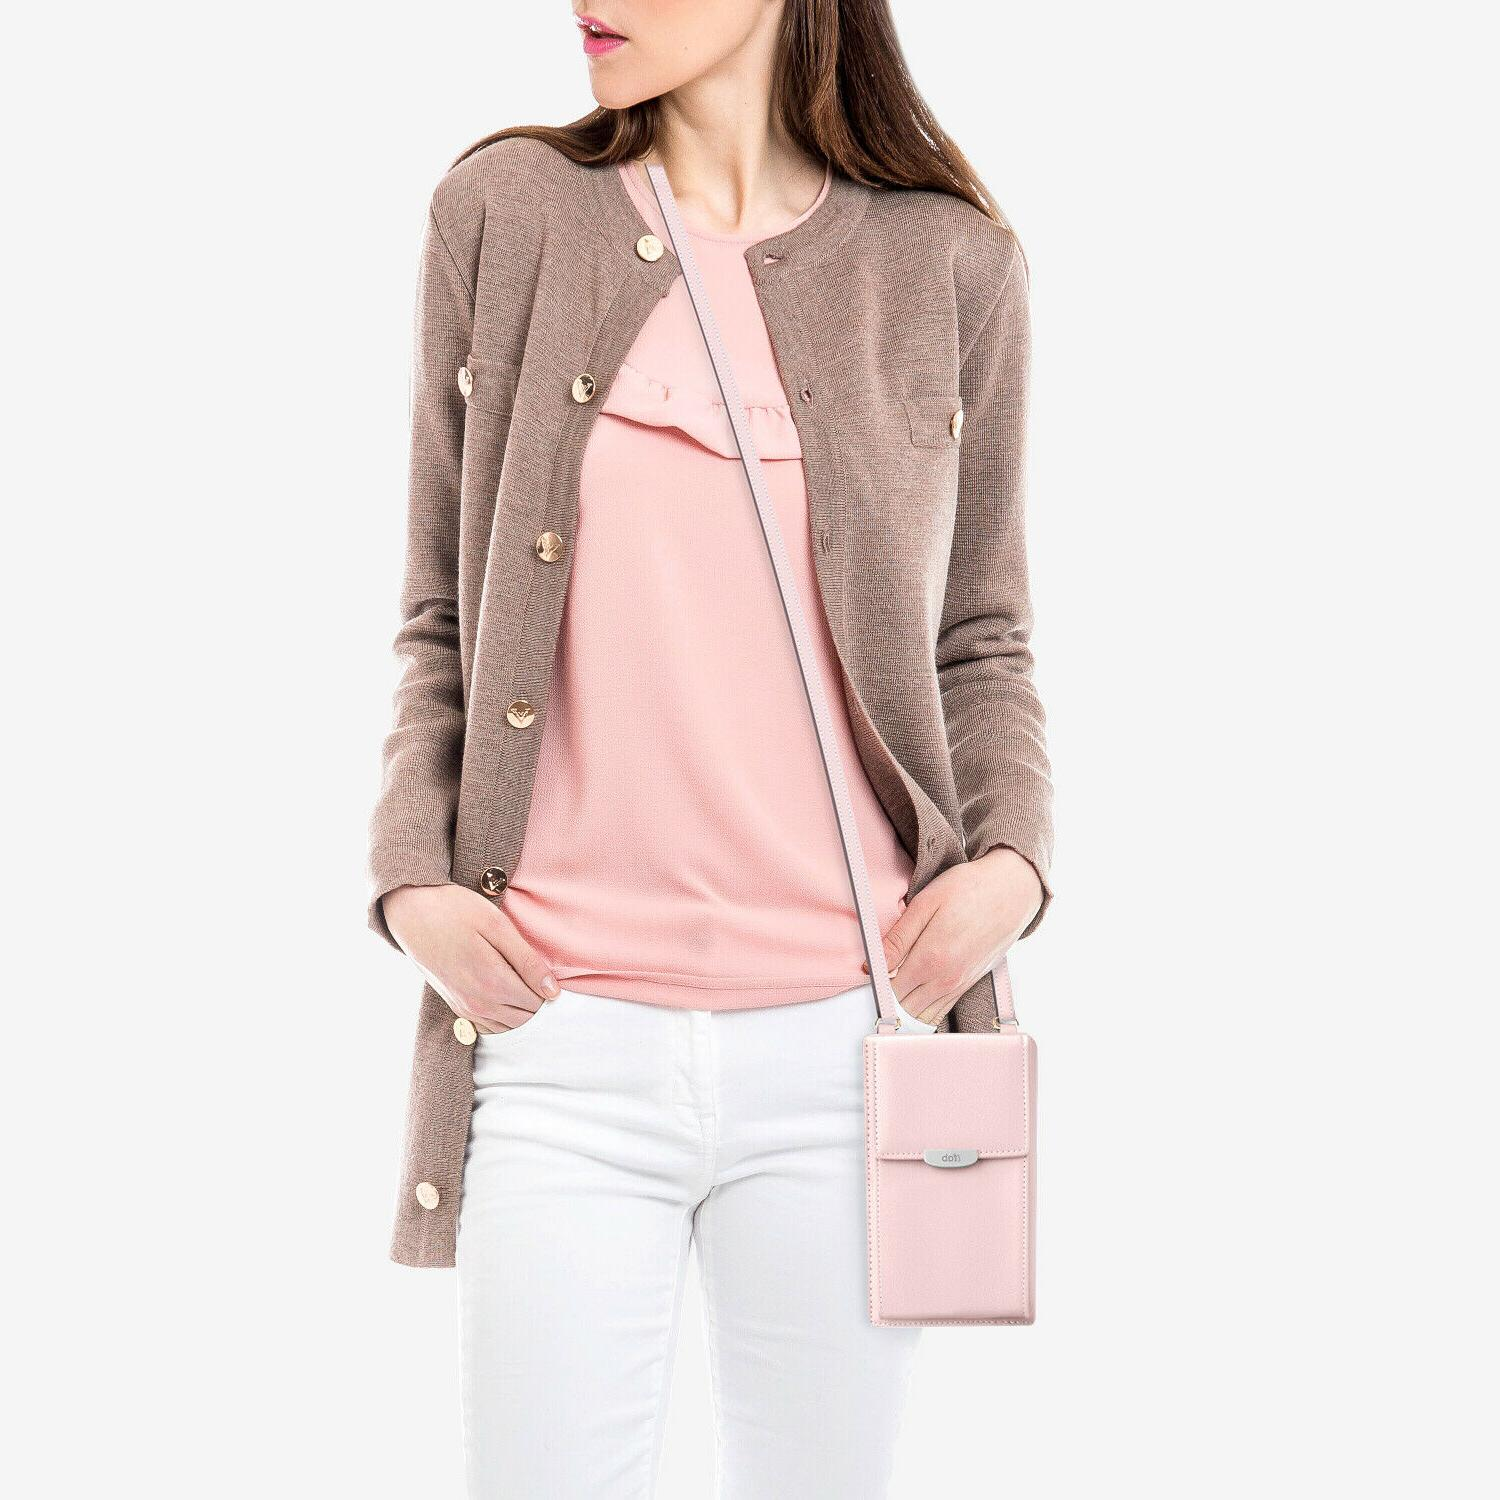 Women Small Bag, ifab Wallet w/Credit Pink